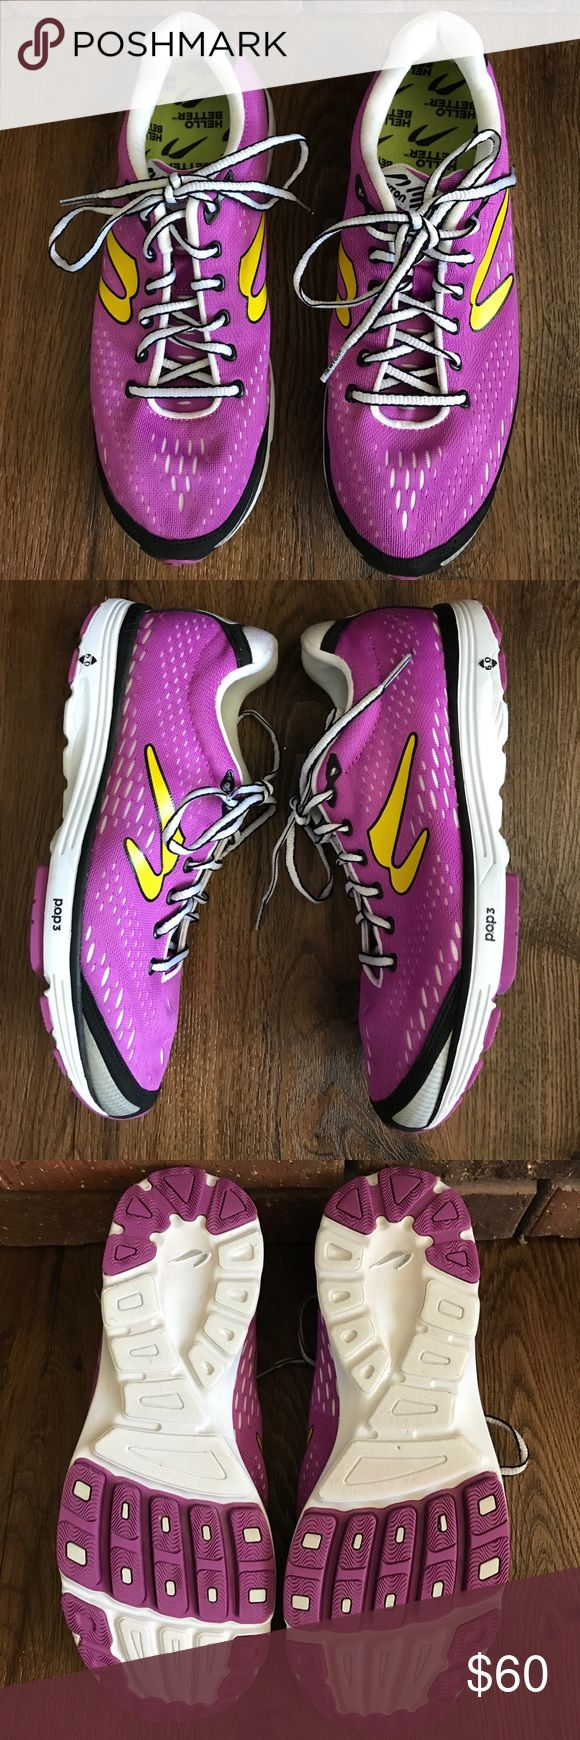 Women's Newton running shoes In excellent condition. Newton Shoes Athletic Shoes